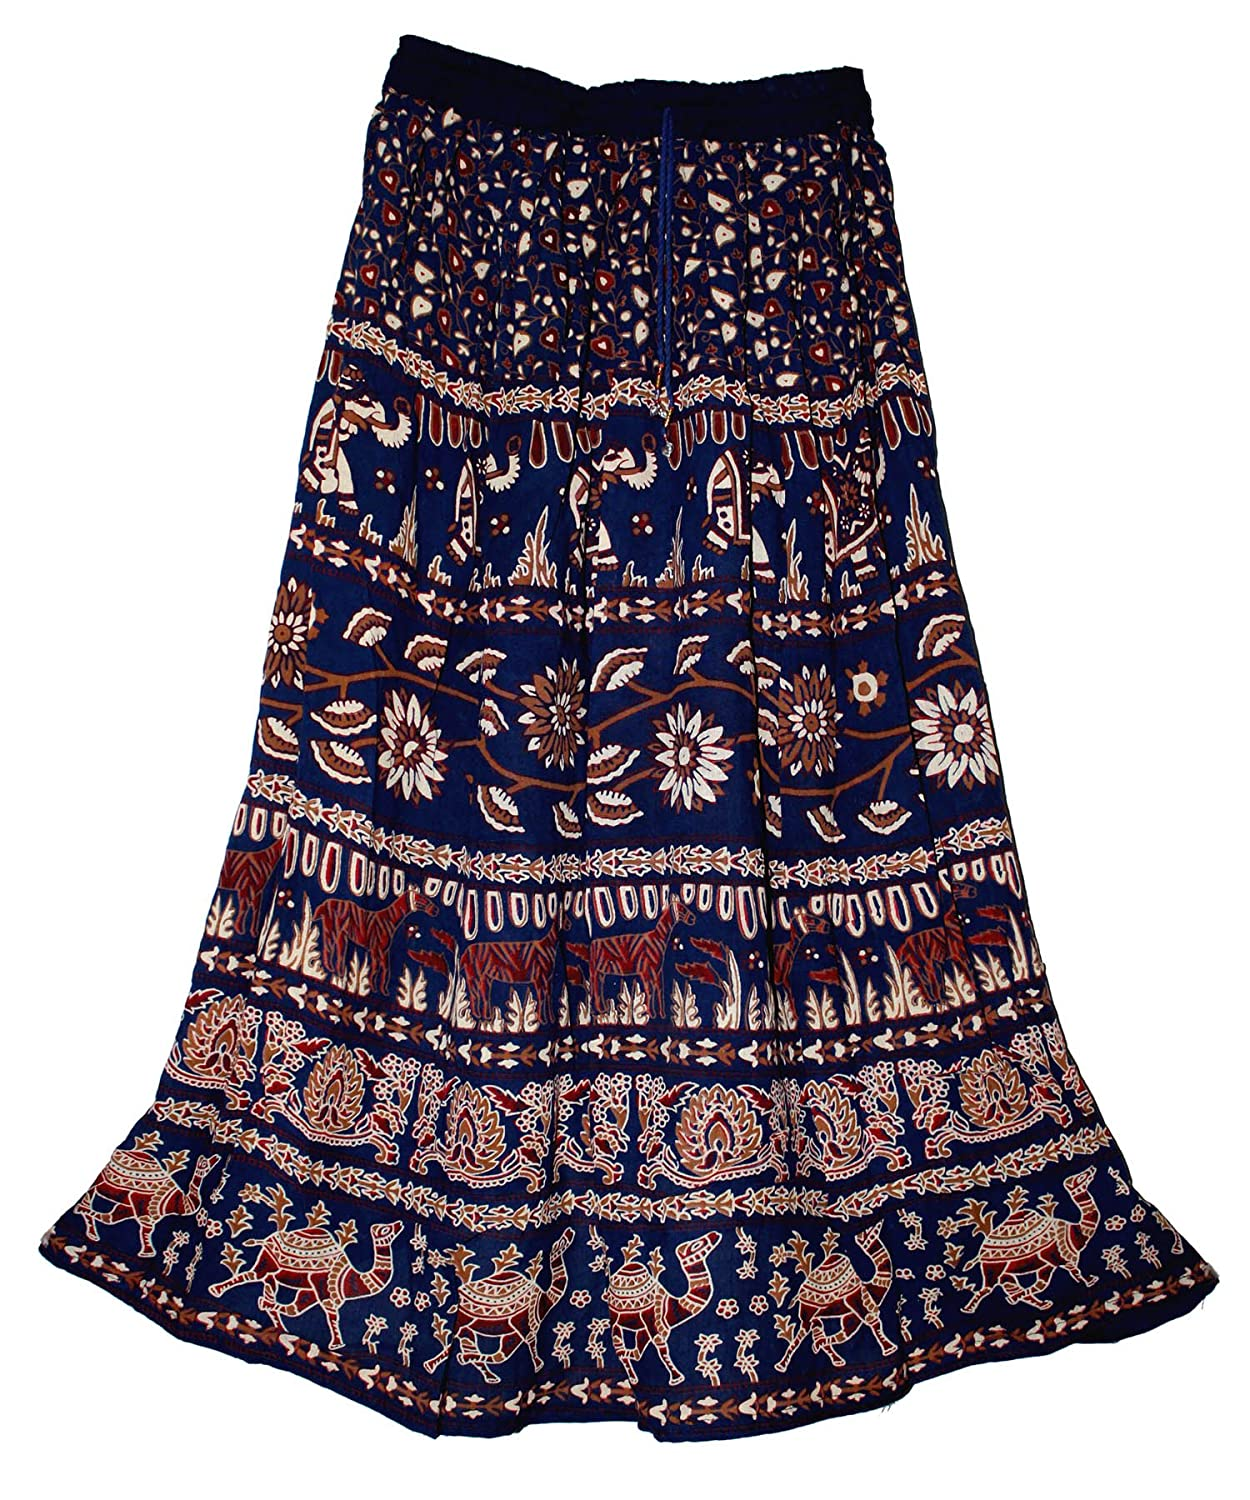 ff9dbd67fe Indian Ethnic Print Rayon Crepe Crinkle Skirt 2 Panel Waist with elastic  and string Free One Size XS / S / M / L Length - 36 INCHES